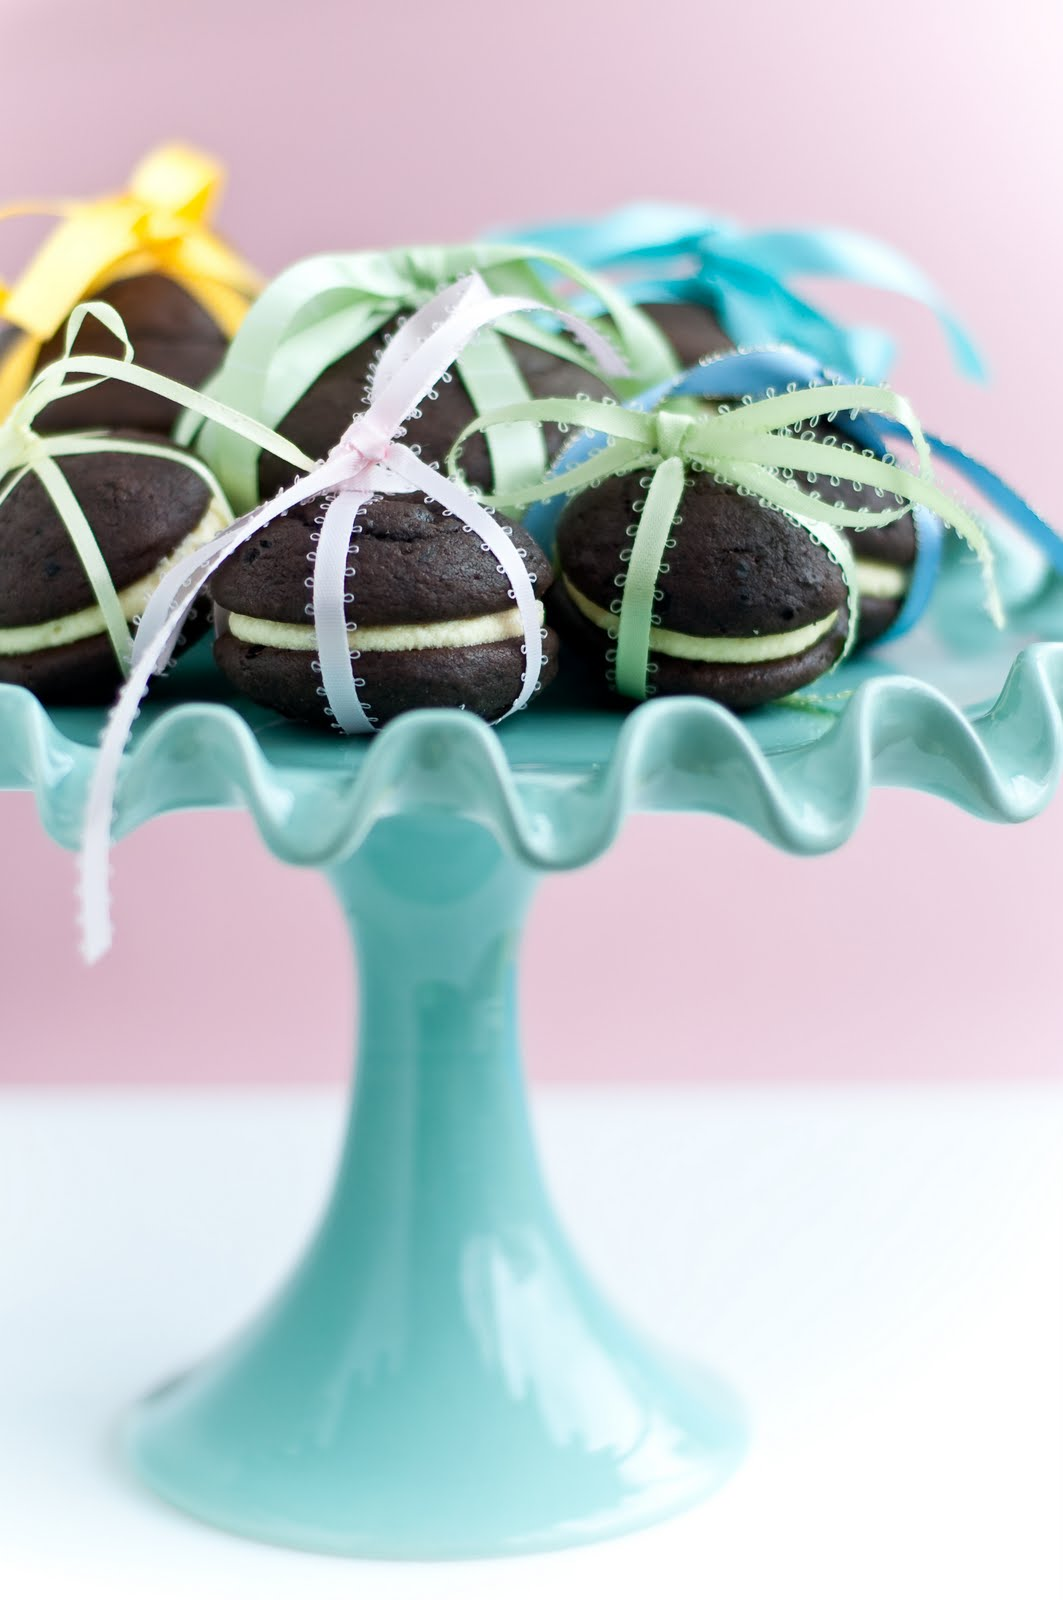 Desserts for Breakfast: Passionate Whoopie Pies, or Musings on